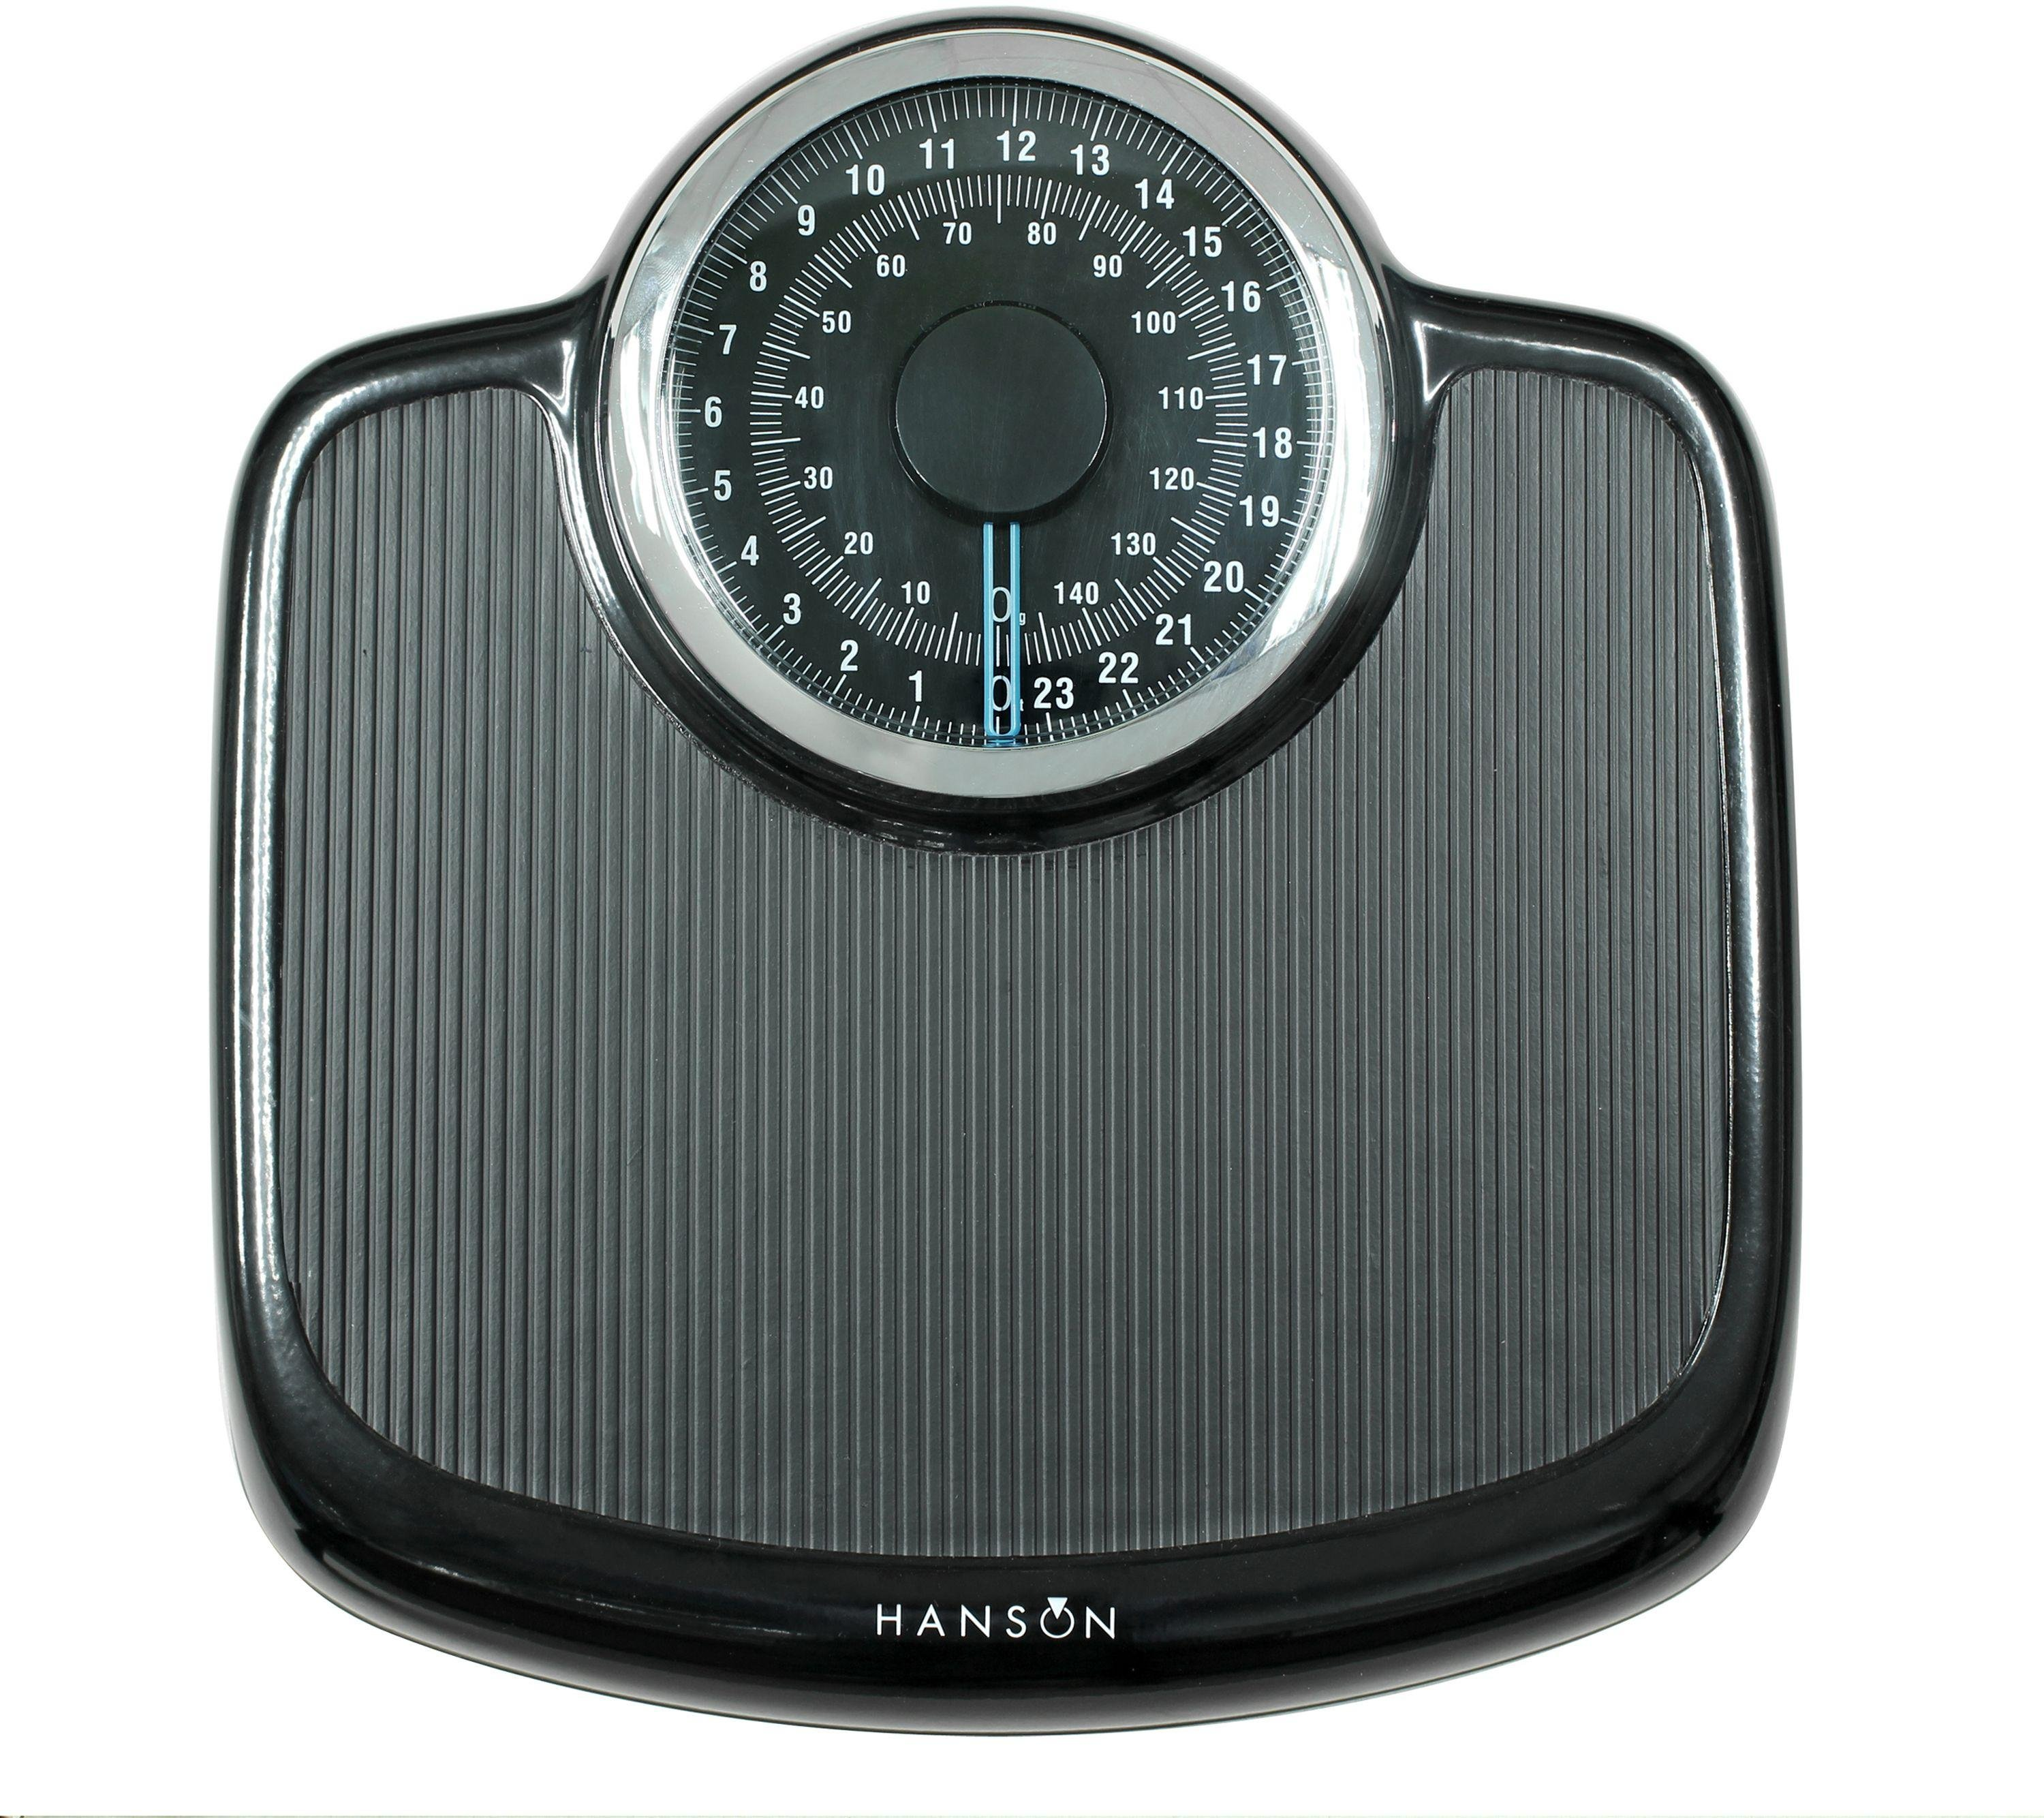 Hanson Neo Large Dial Mechanical Scale - Black